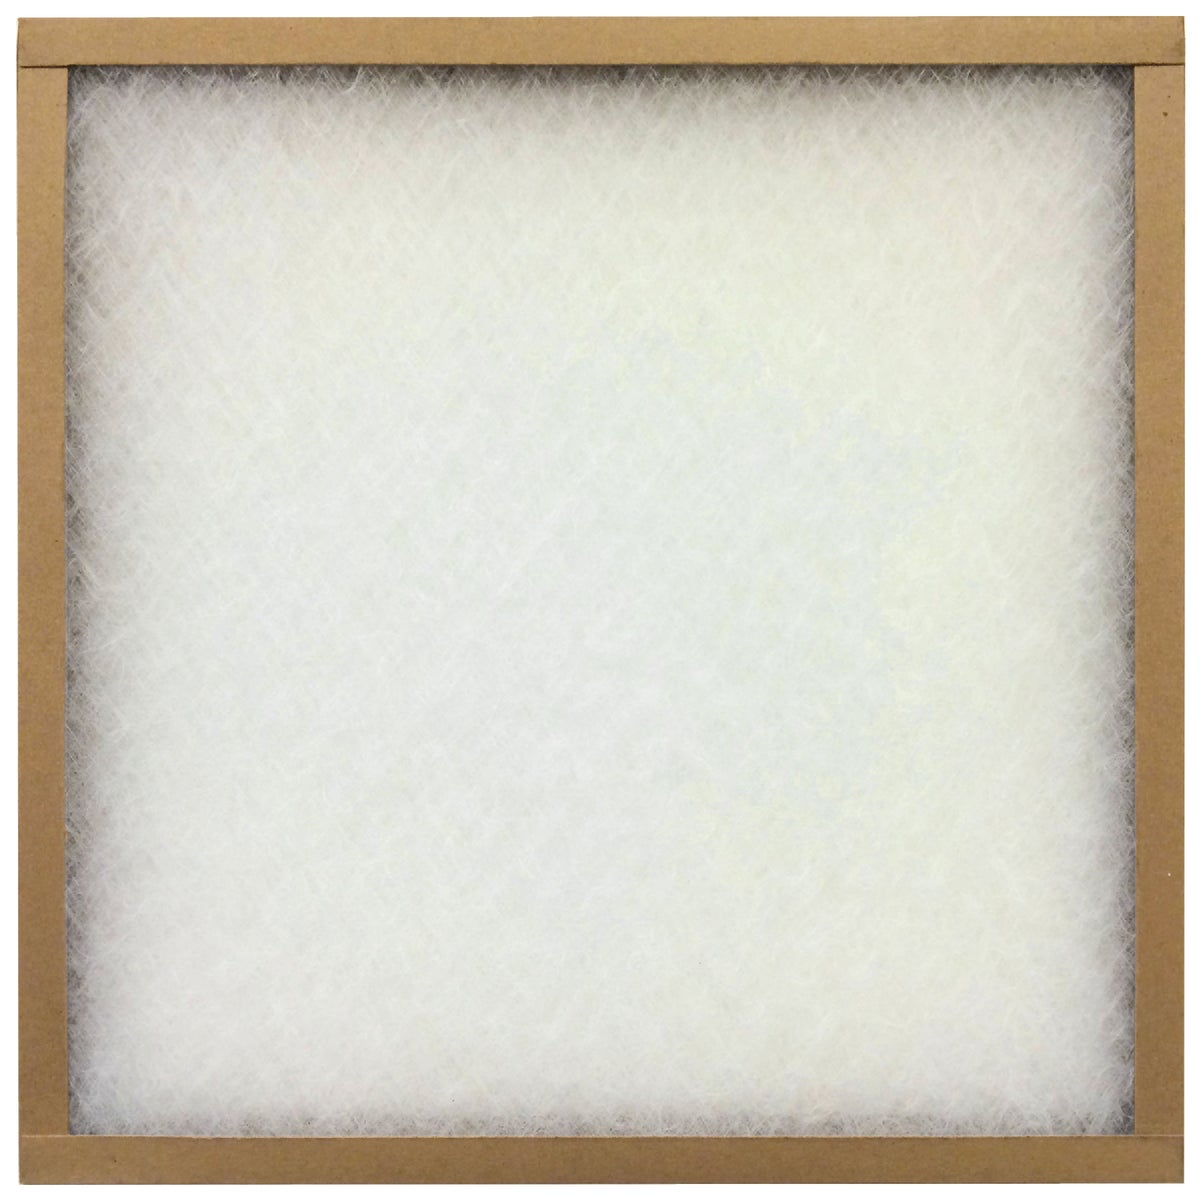 16X20X1 FBRGL AIR FILTER - 10055.011620 by Flanders Corp